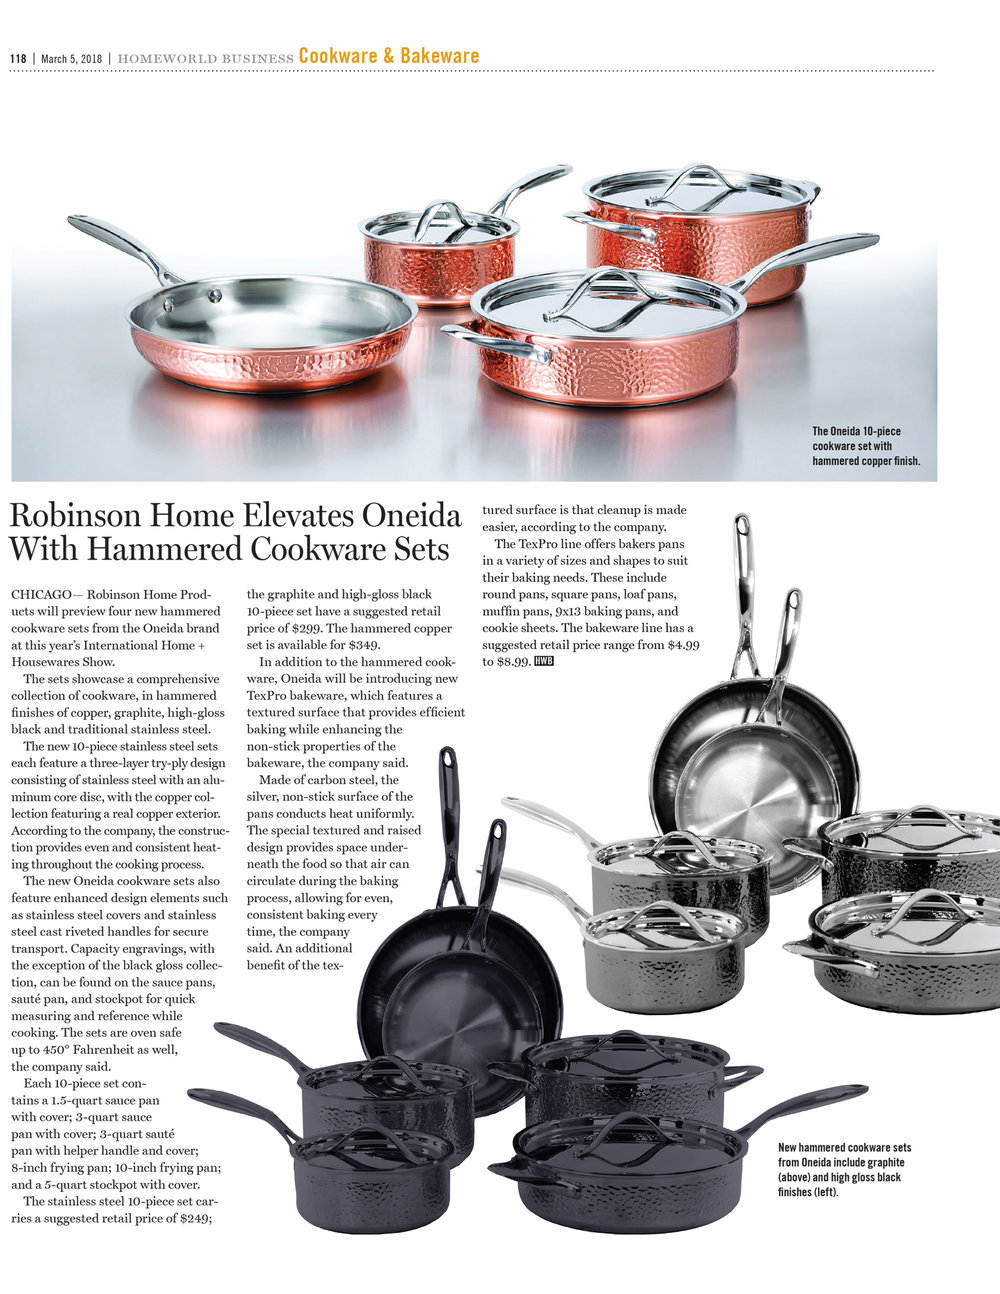 HomeWorld_Cookware_Bakeware_march_2018.jpg